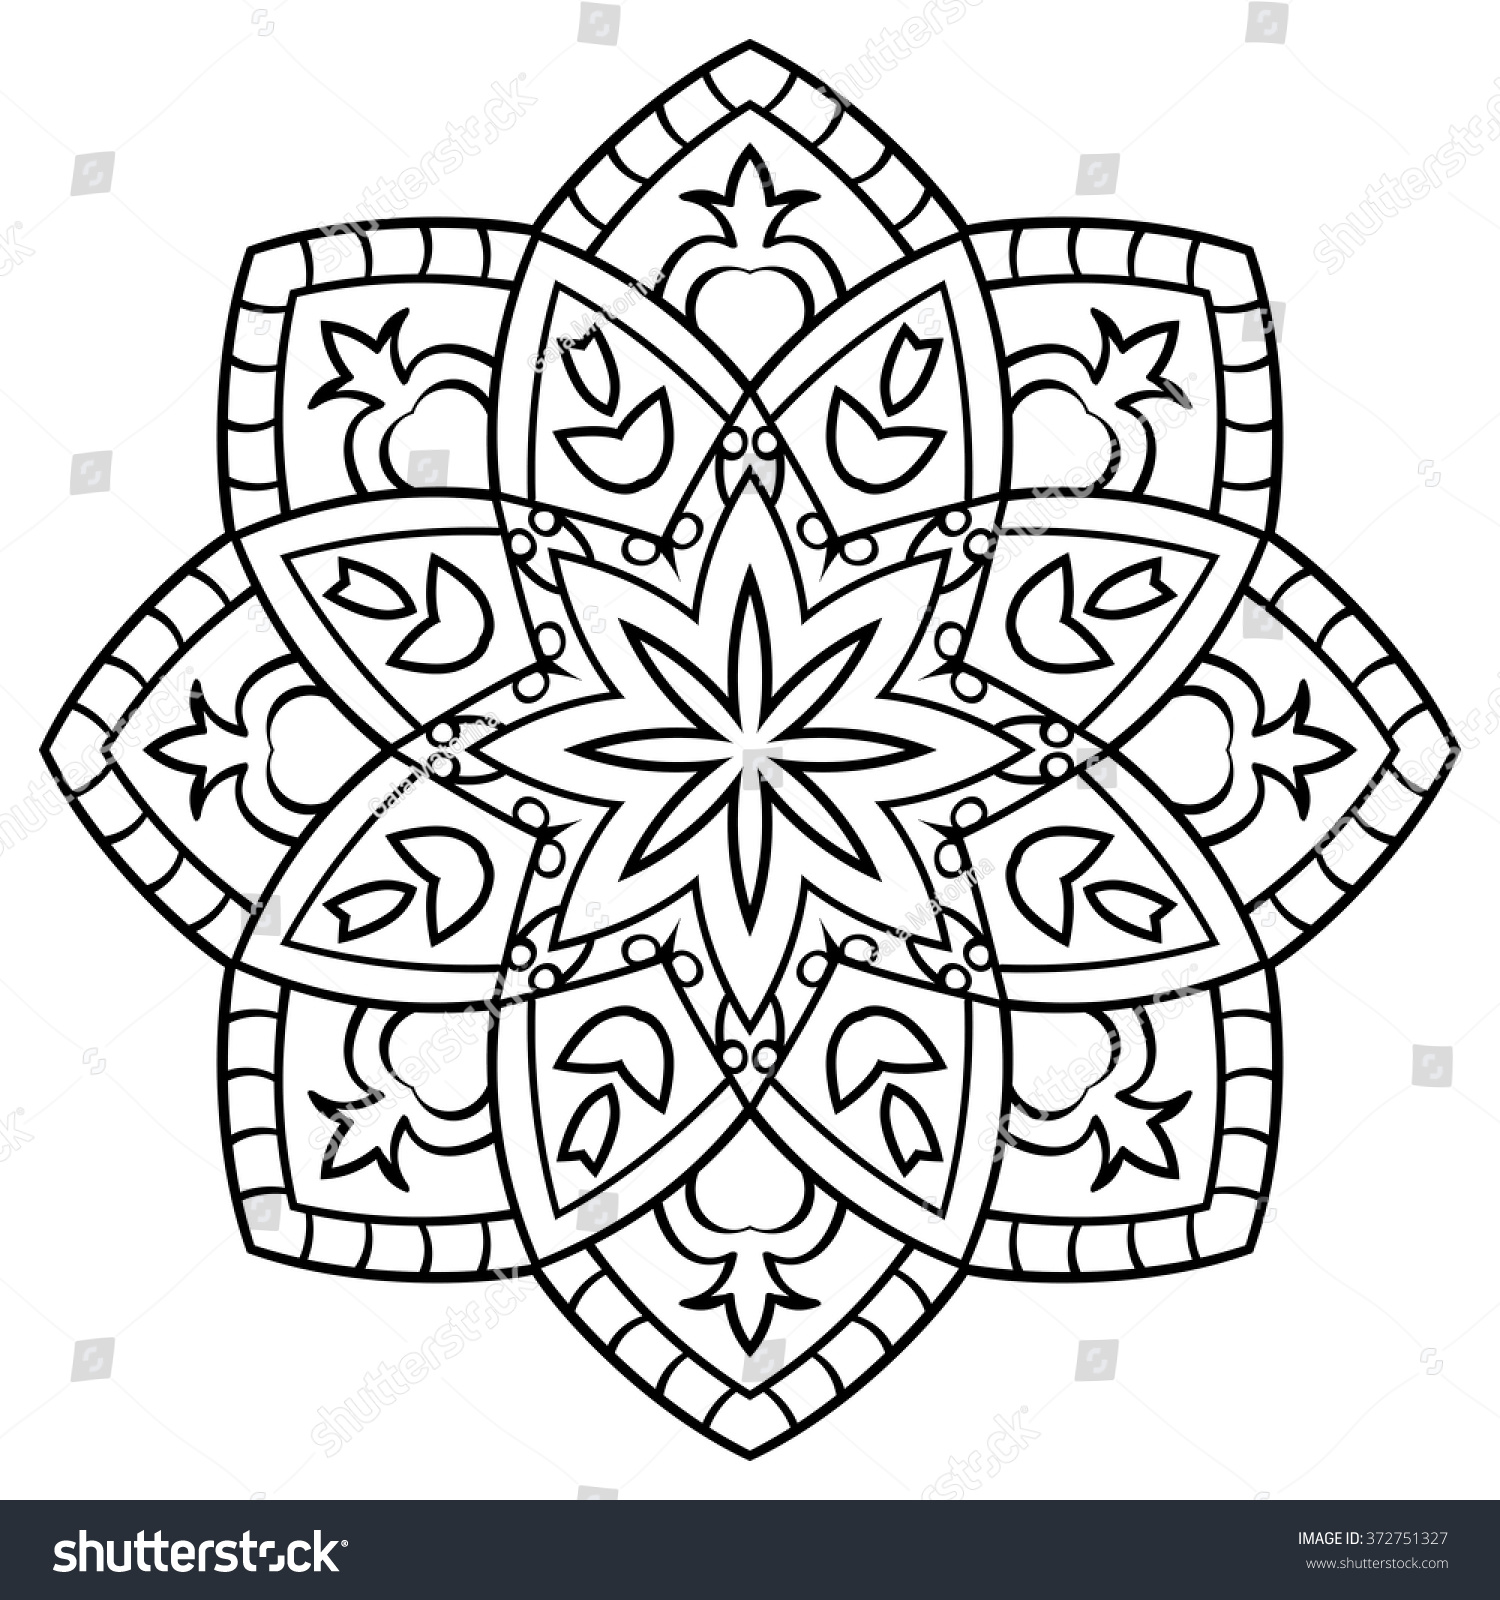 Simple Contour Mandala On White Background Stock Vector